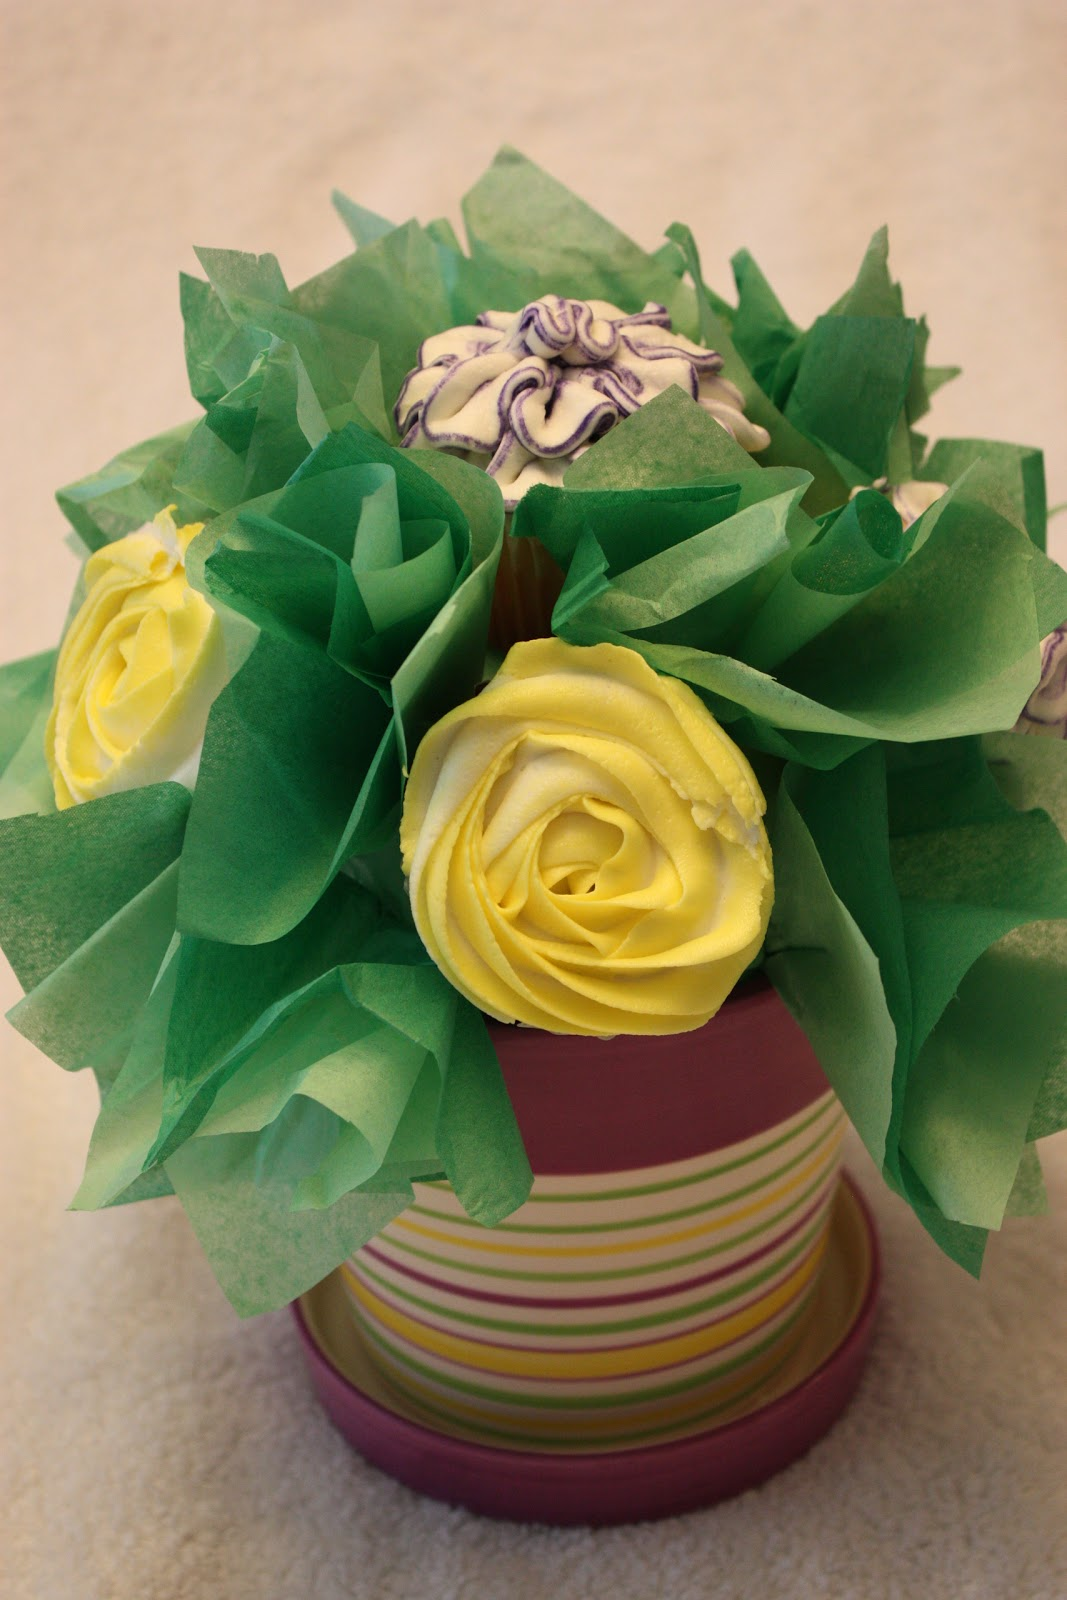 Sweet On You-Designer Cups & Cakes: Cupcake Bouquet